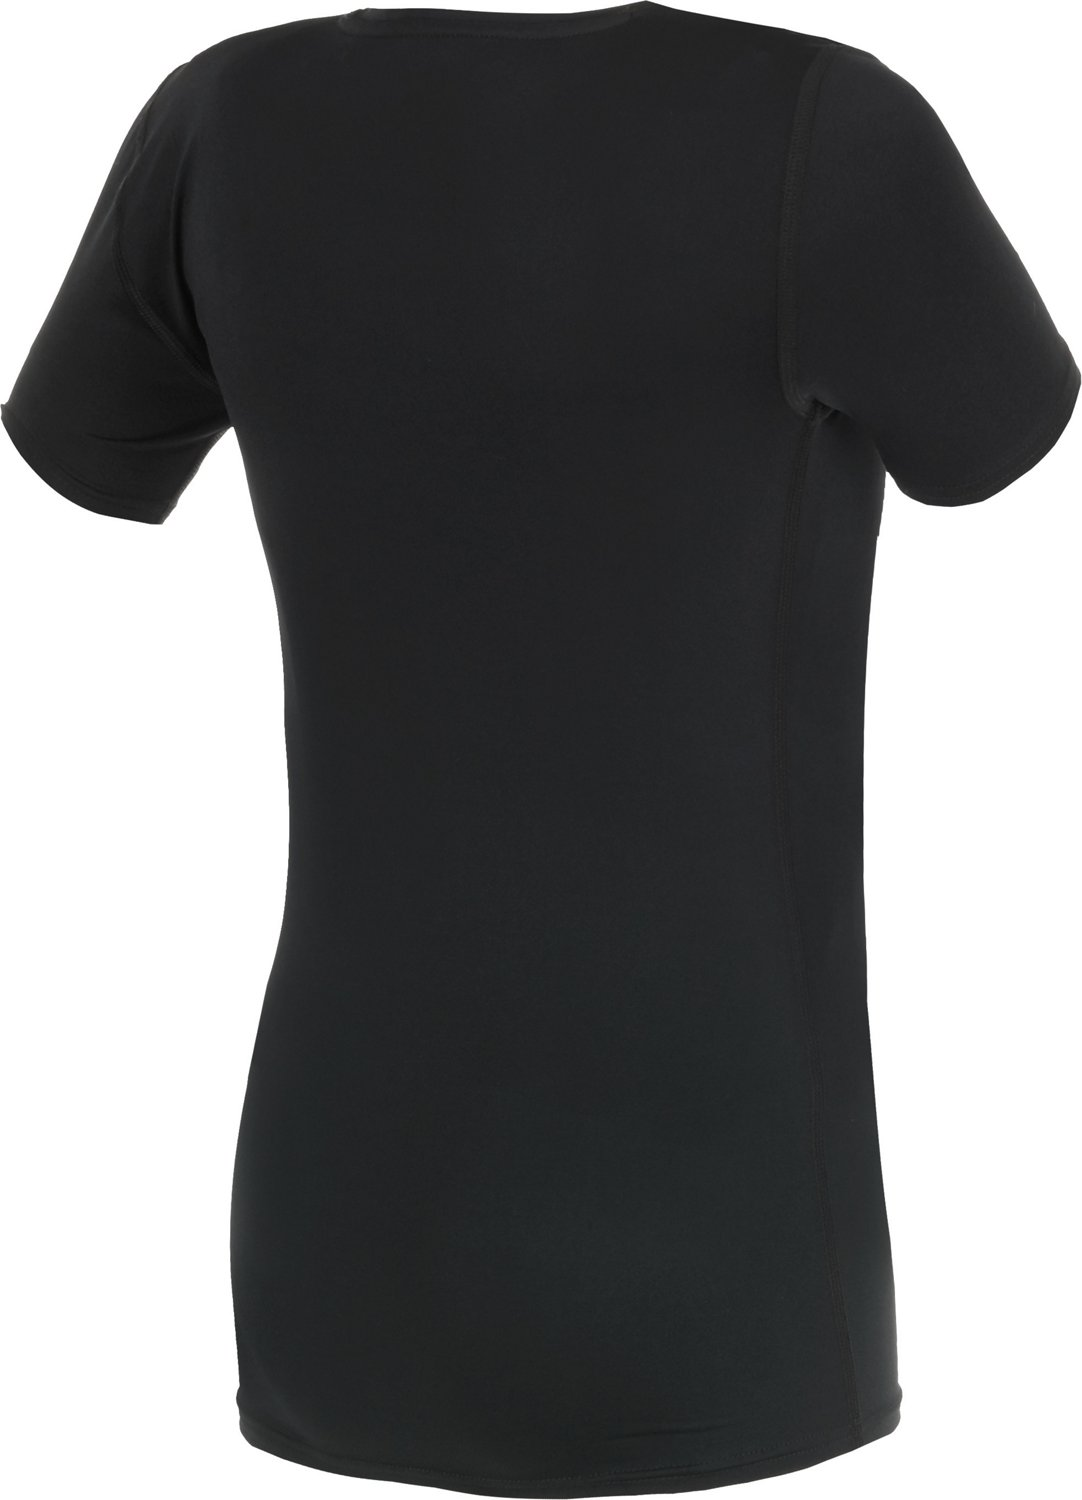 BCG Boys' Compression Short Sleeve T-shirt - view number 1